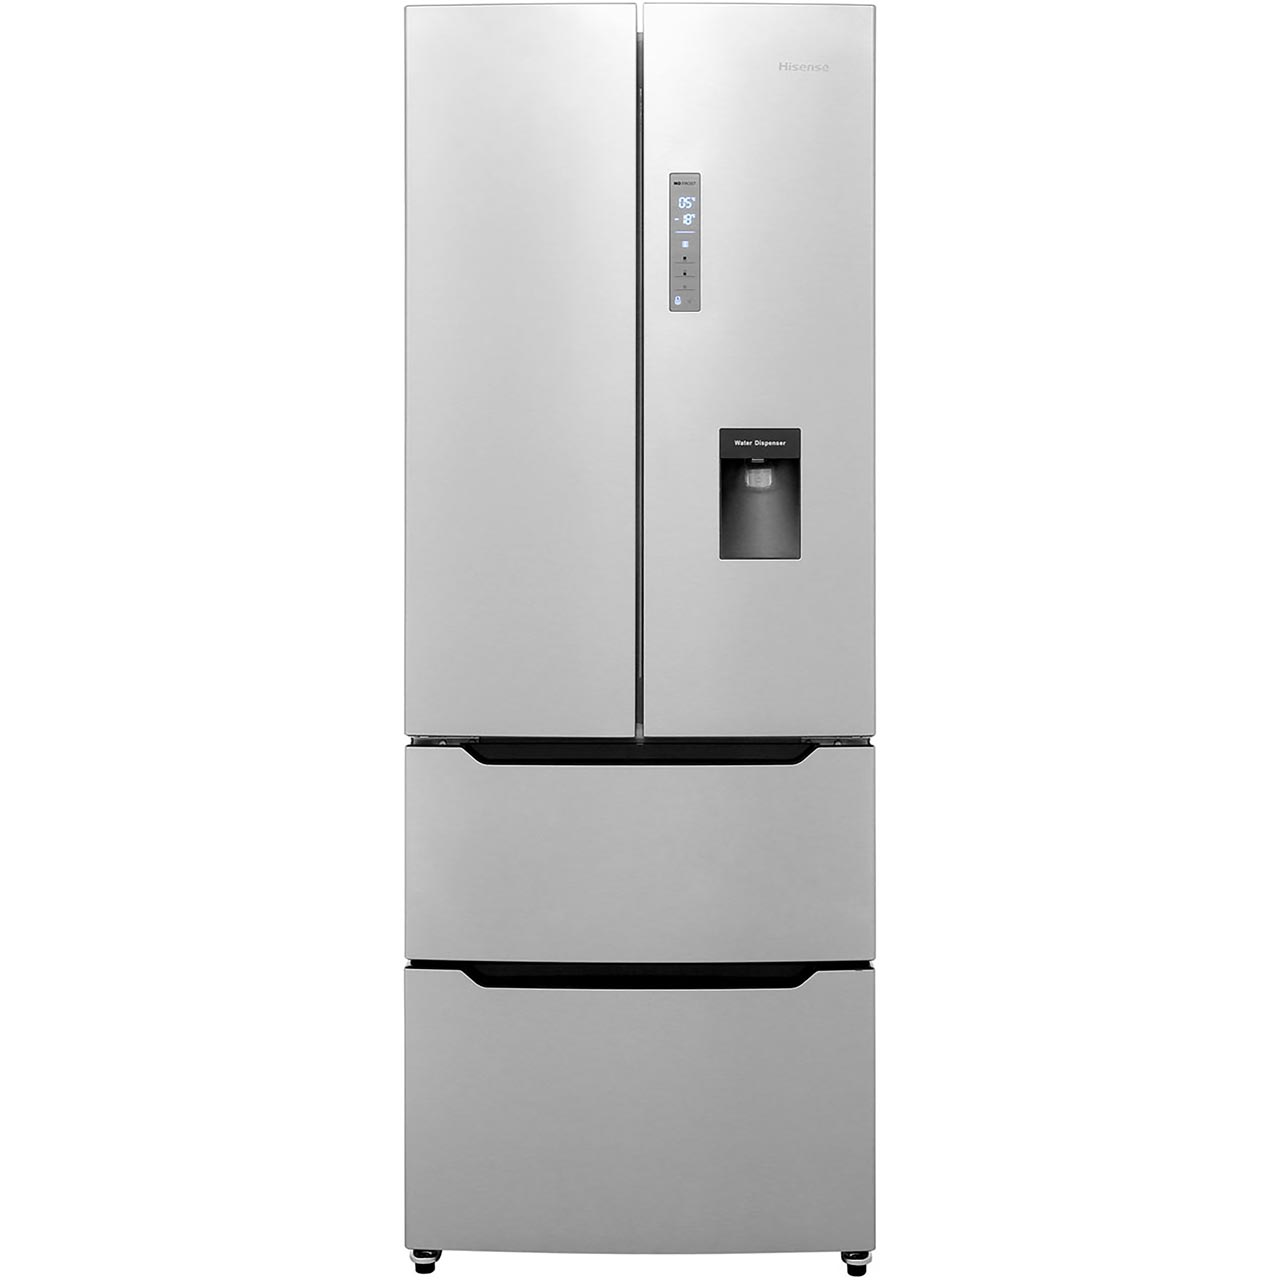 Fridge Freezer Details About Hisense Rf528n4wc1 70cm Frost Free American Fridge Freezer Stainless Steel